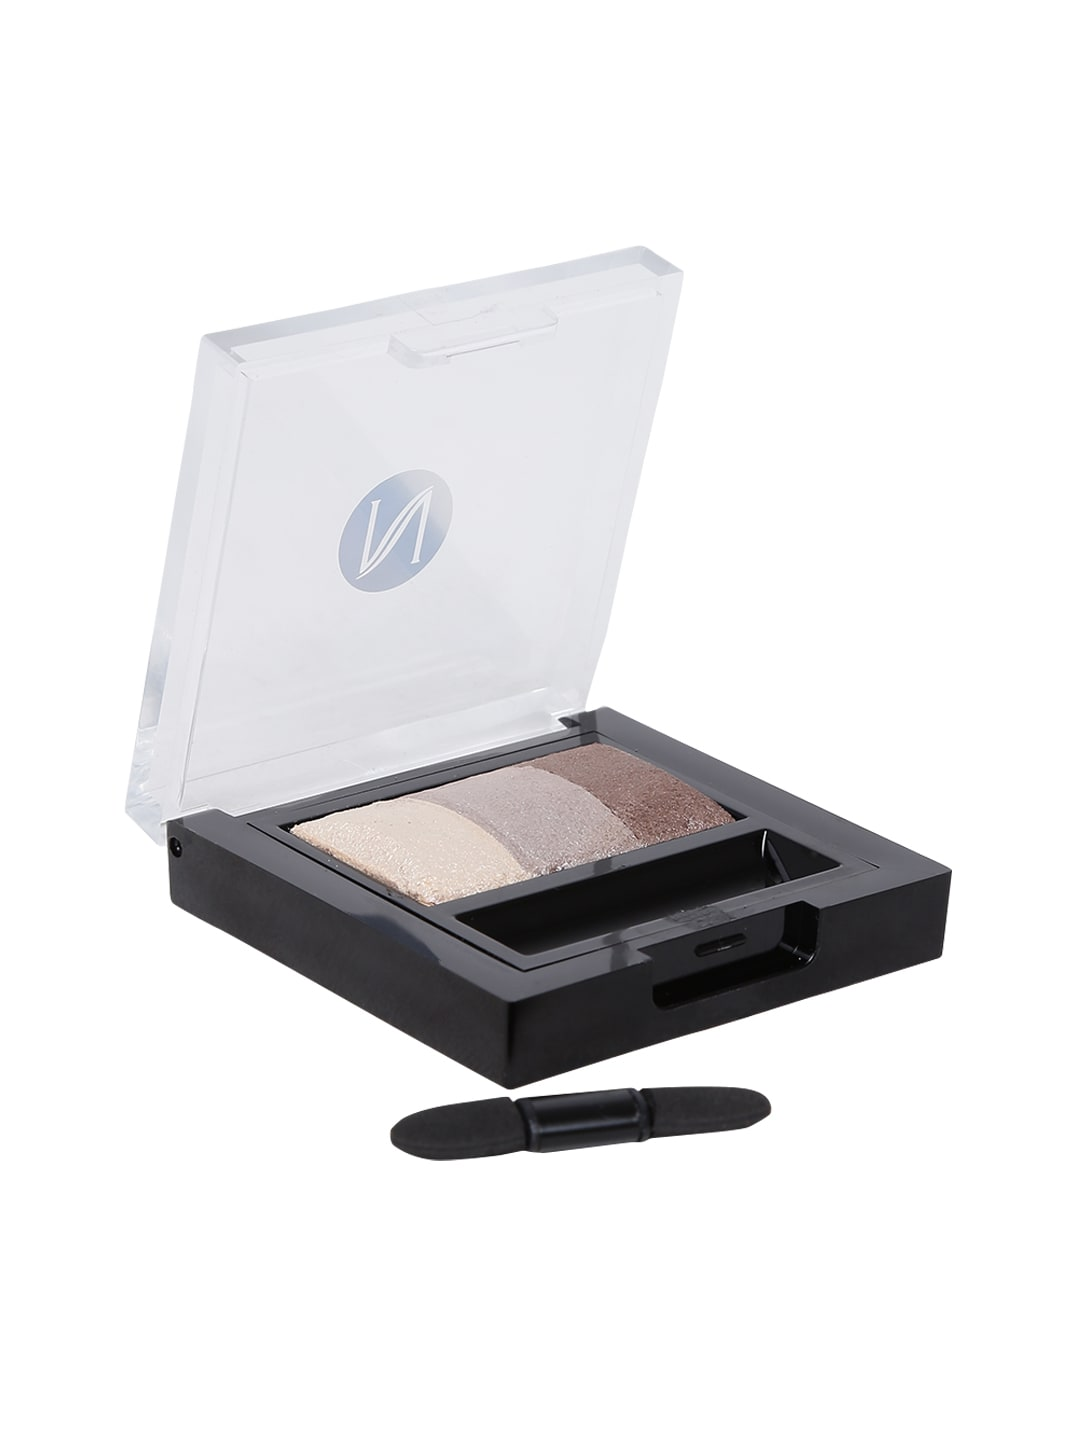 Natio Mineral Dreaming Eyeshadow Trio Palette image